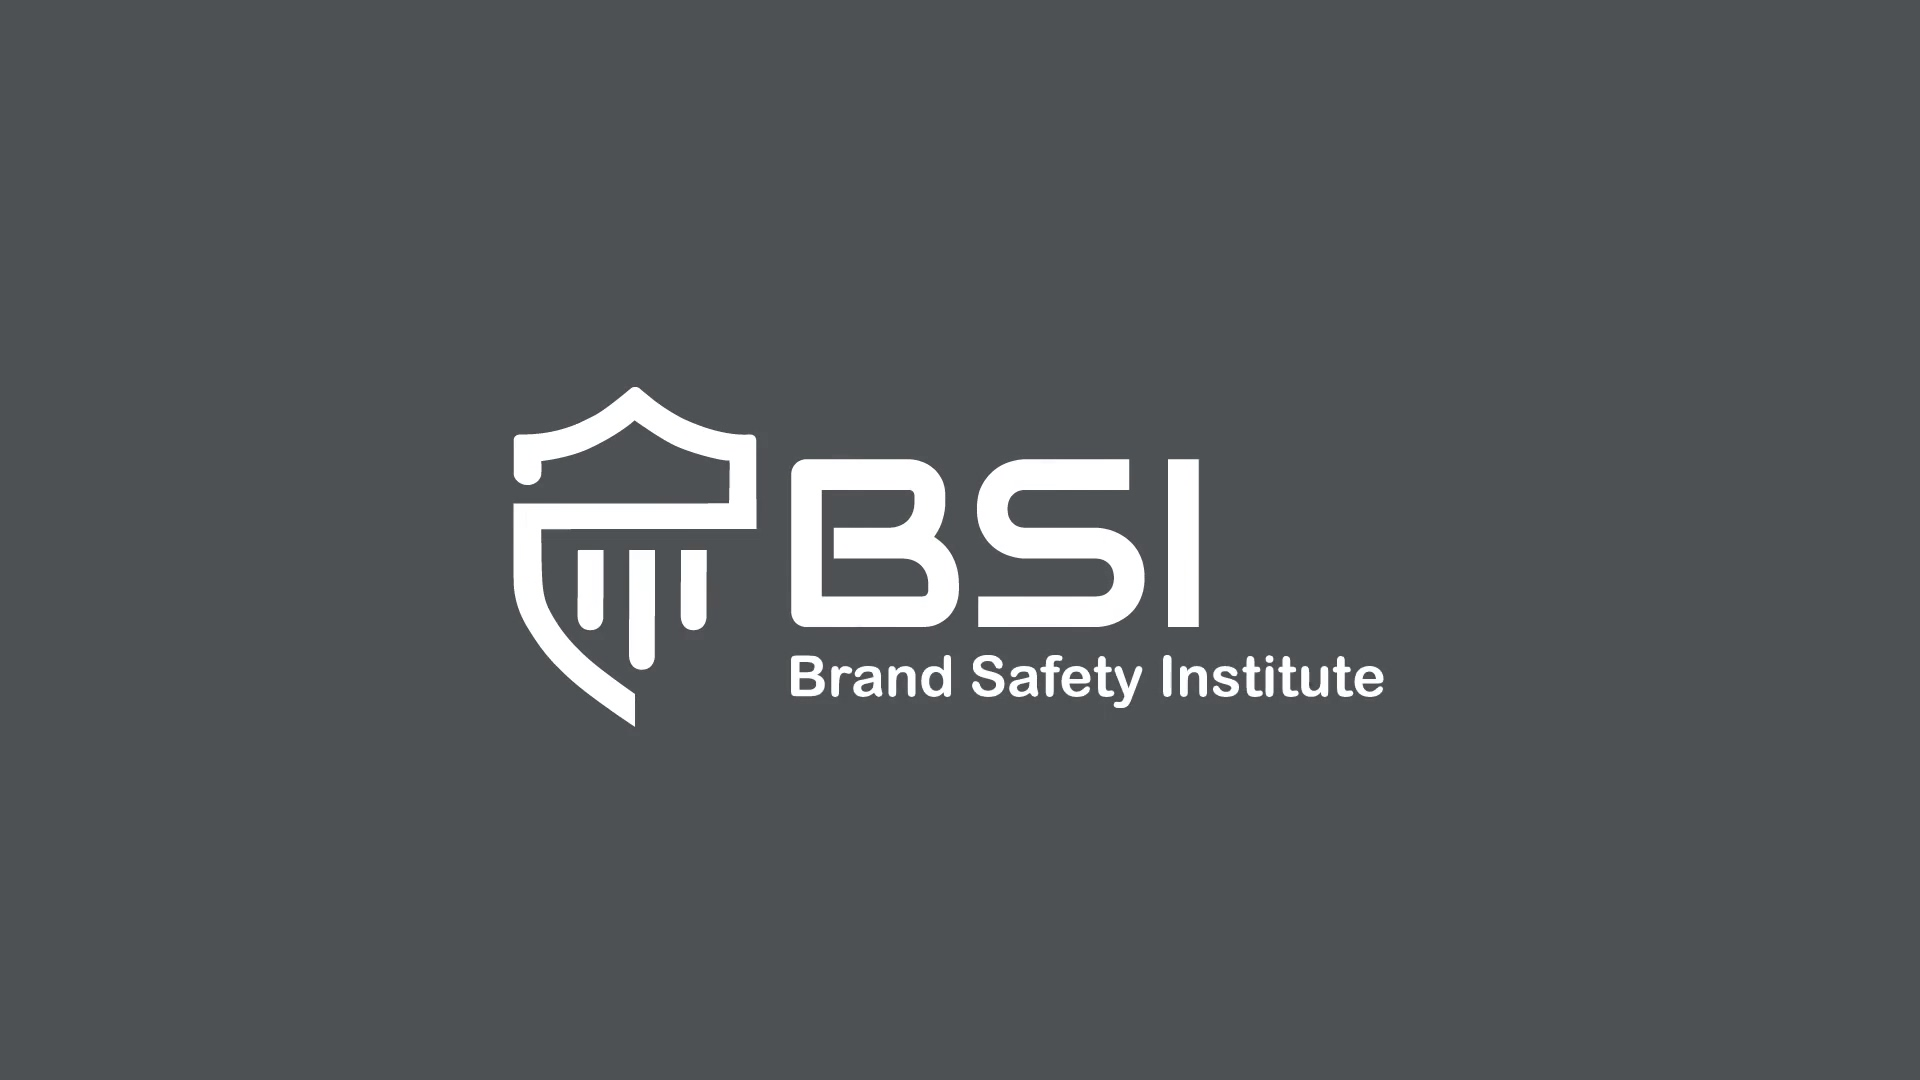 Brand Safety Institute Introduction